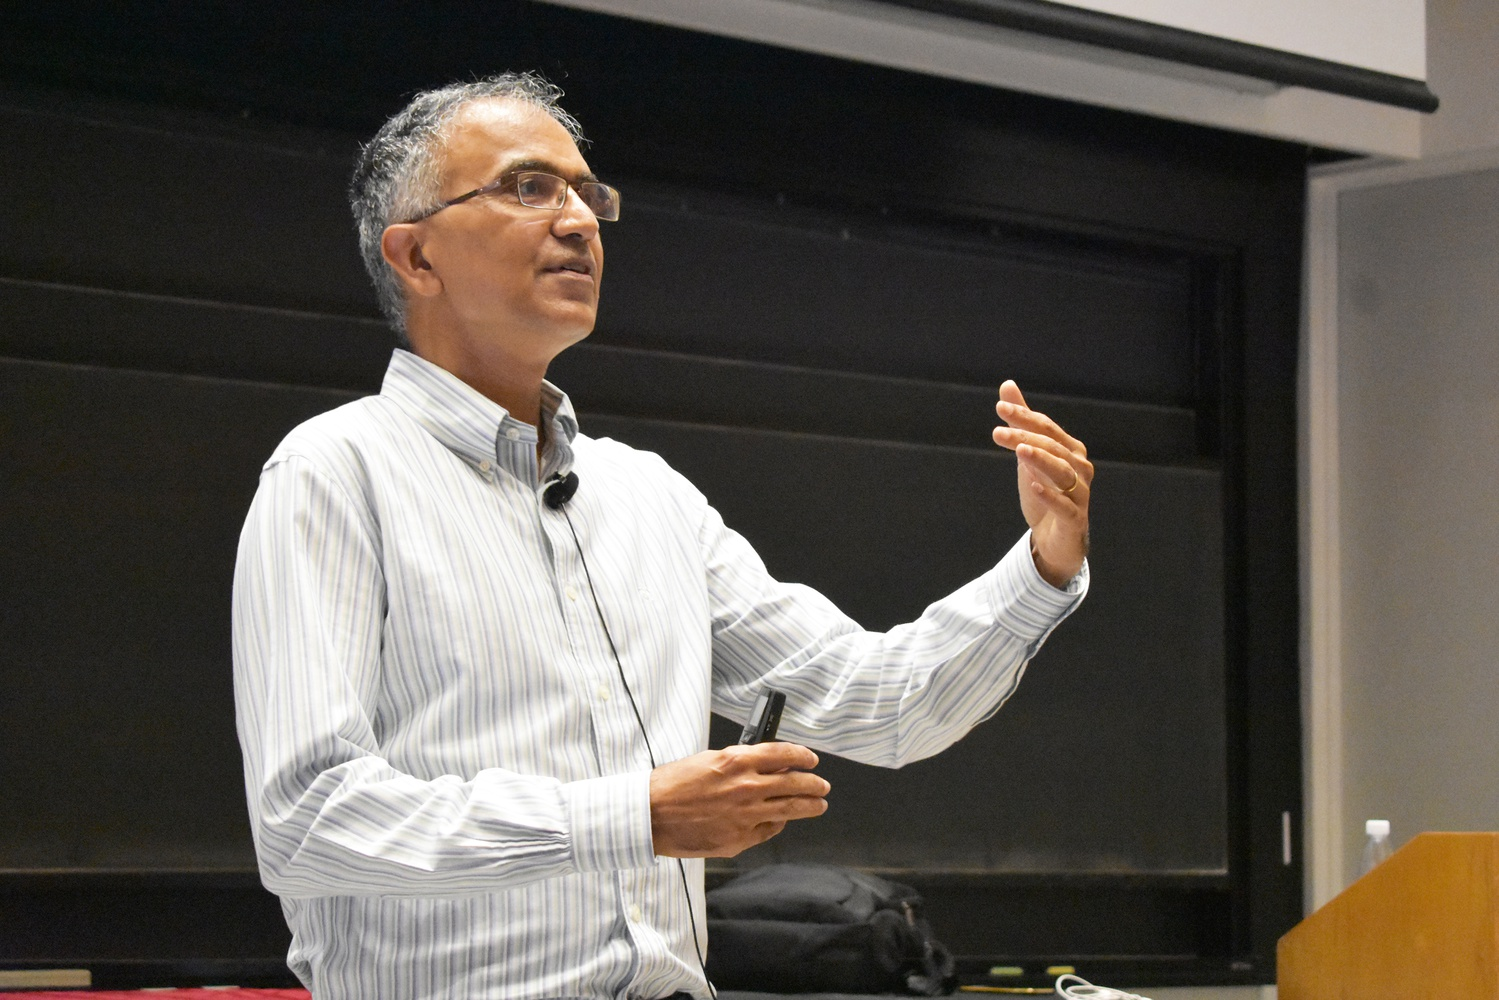 Sanjeev Arora, a Princeton University computer science professor, gives a lecture about the theoretical understanding of deep learning in Science Center Hall D.